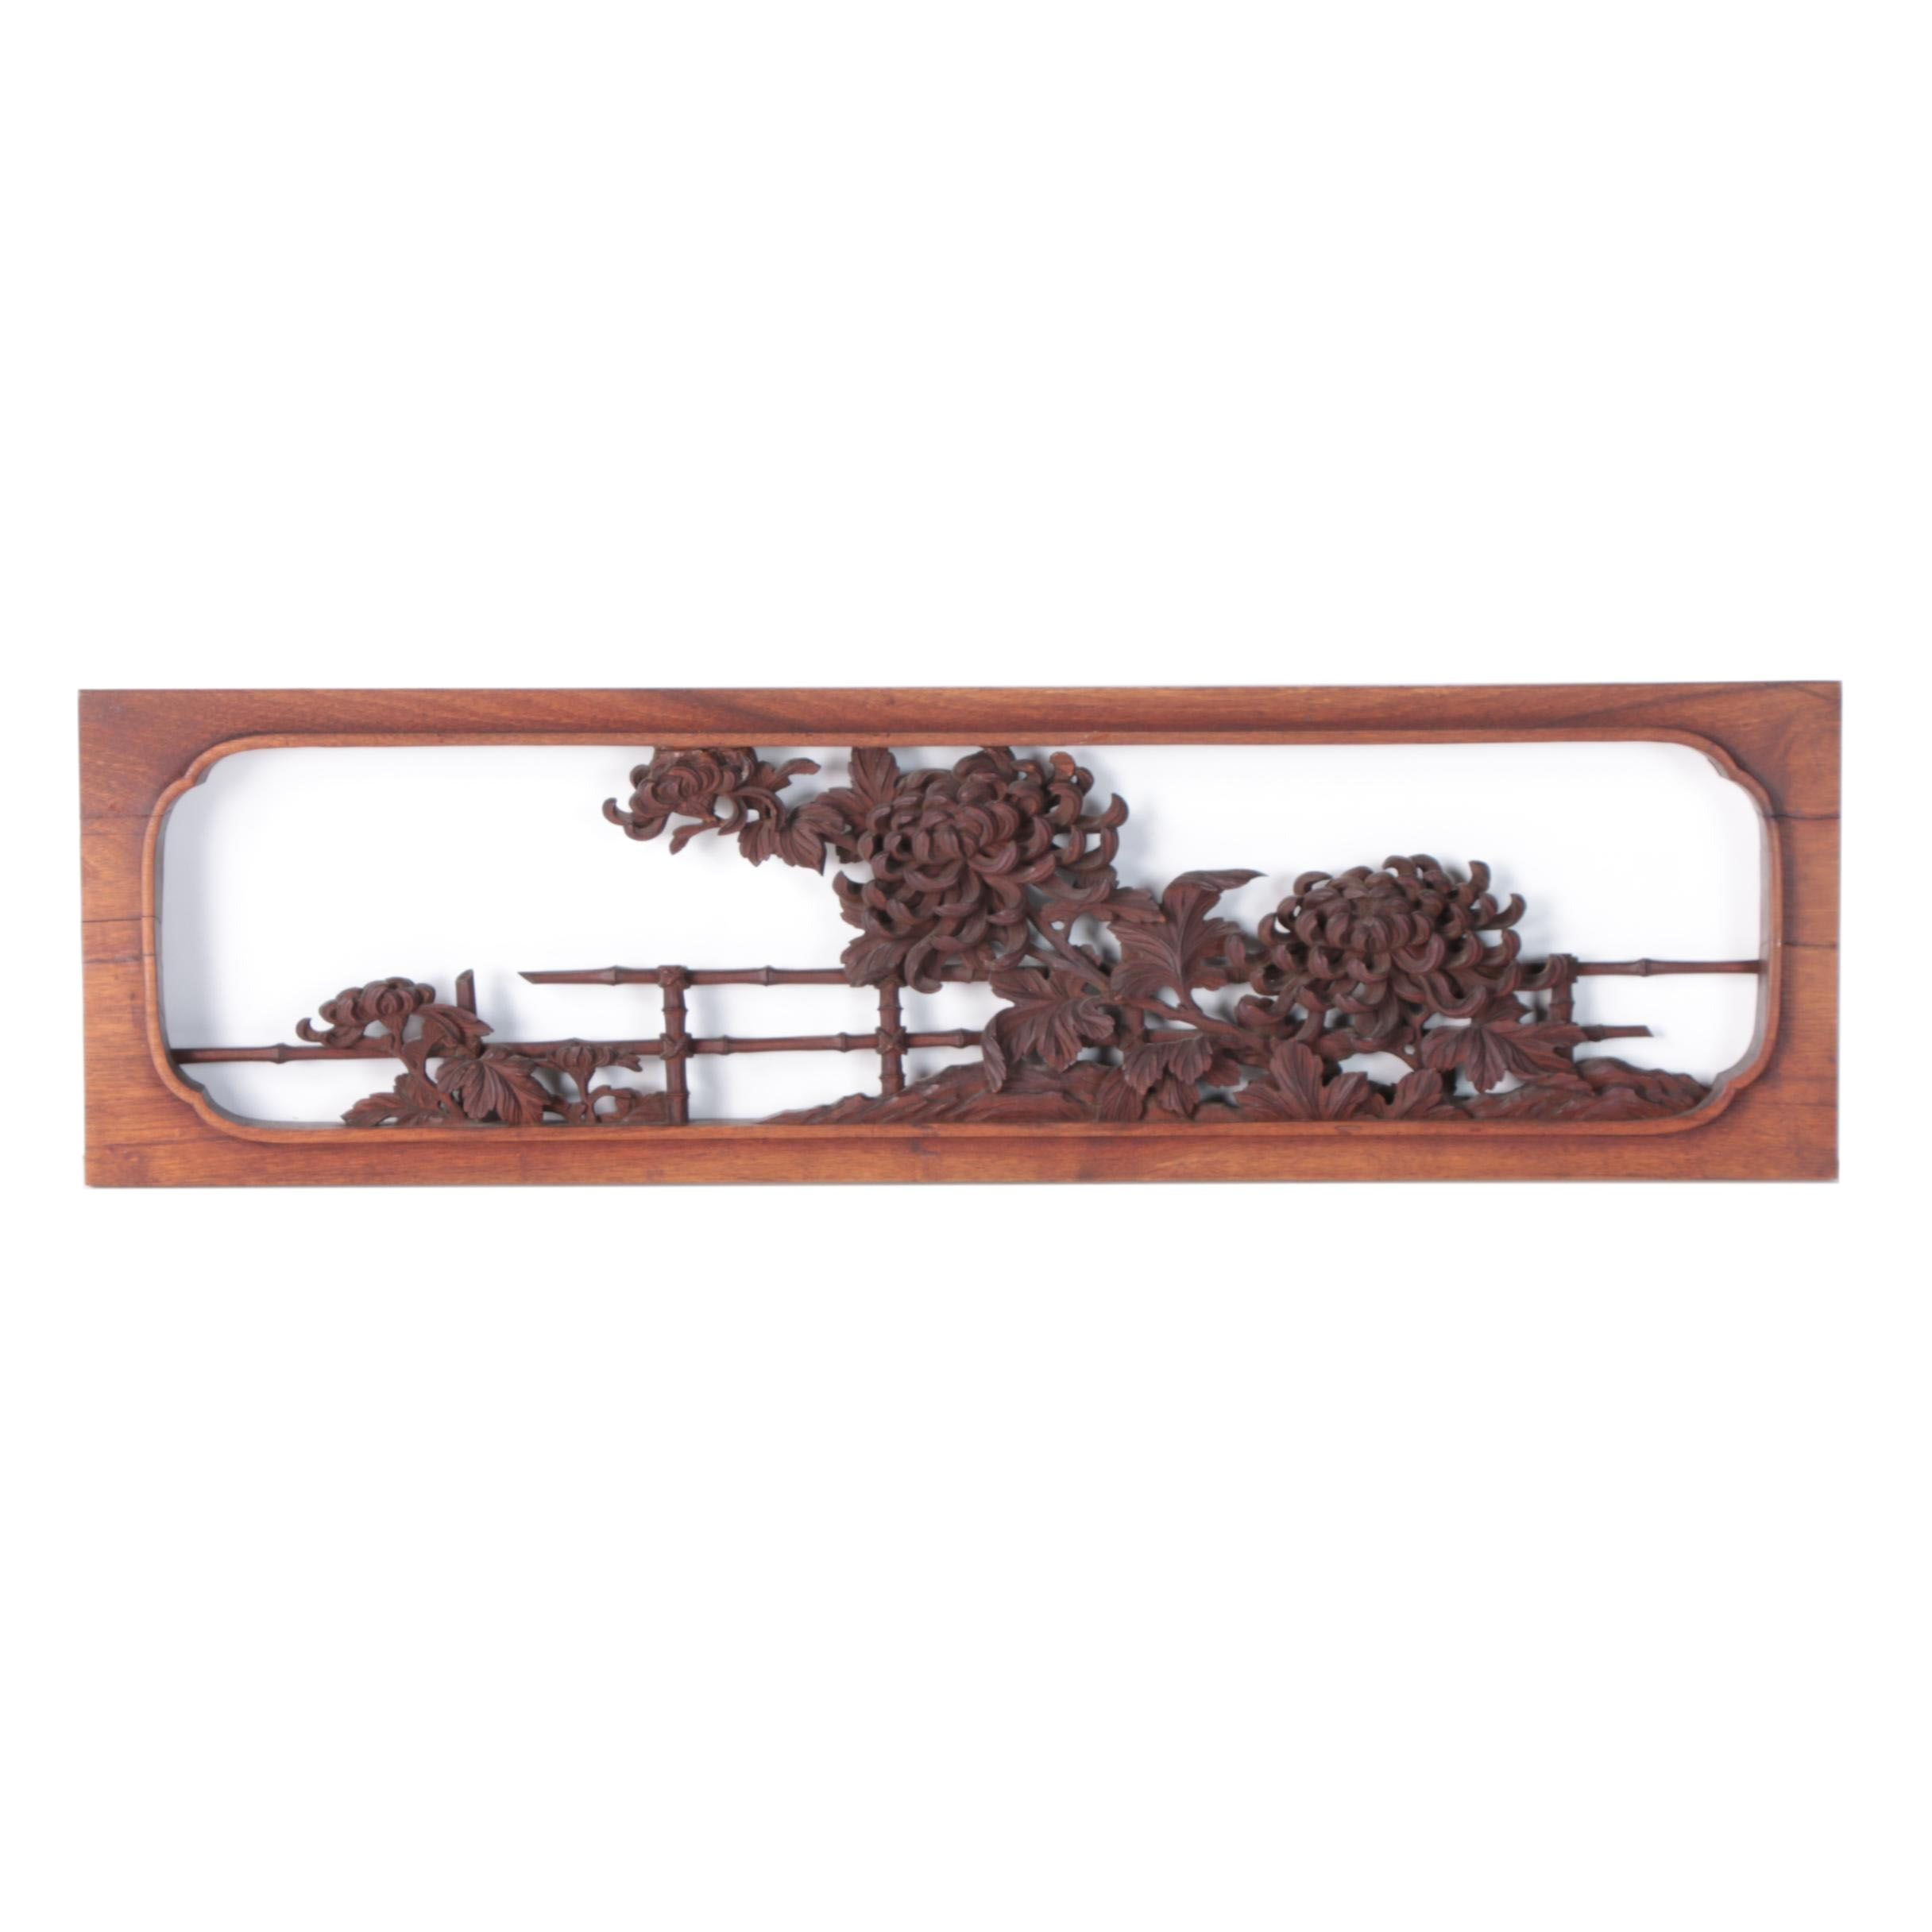 Japanese Chrysanthemum and Bamboo Carved Wooden Panel